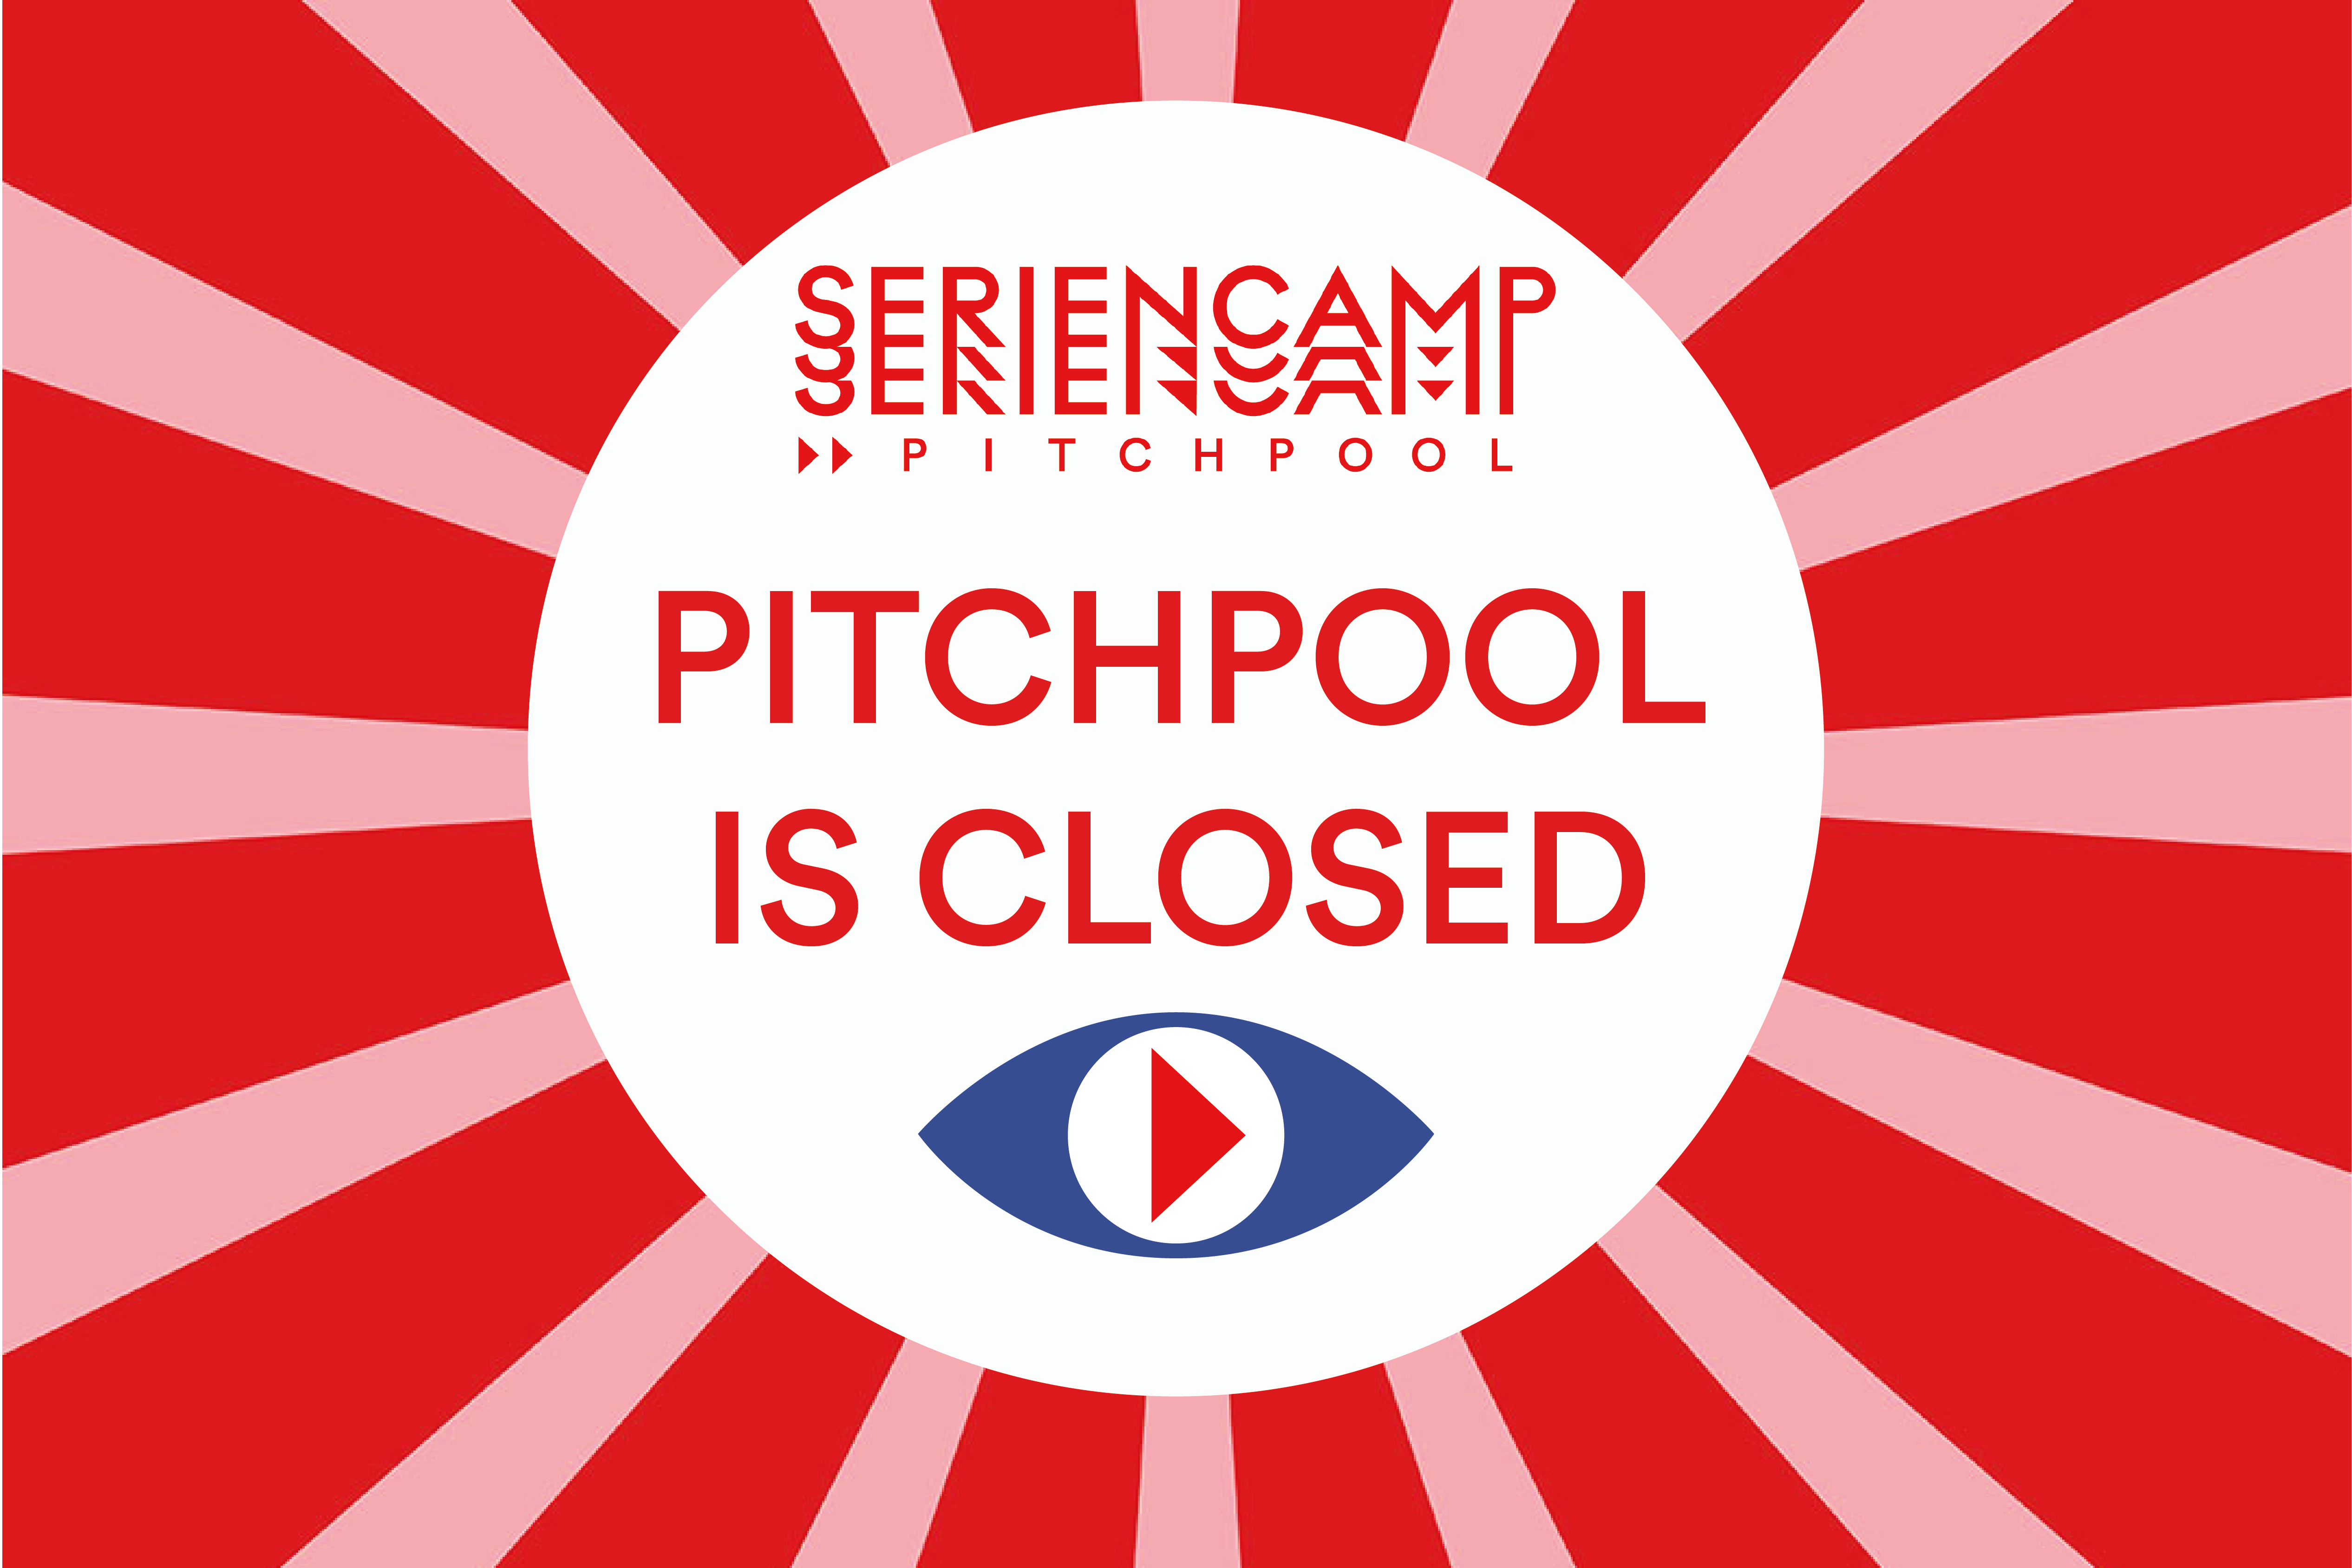 Seriencamp Conference: Pitchpool Tickets available now